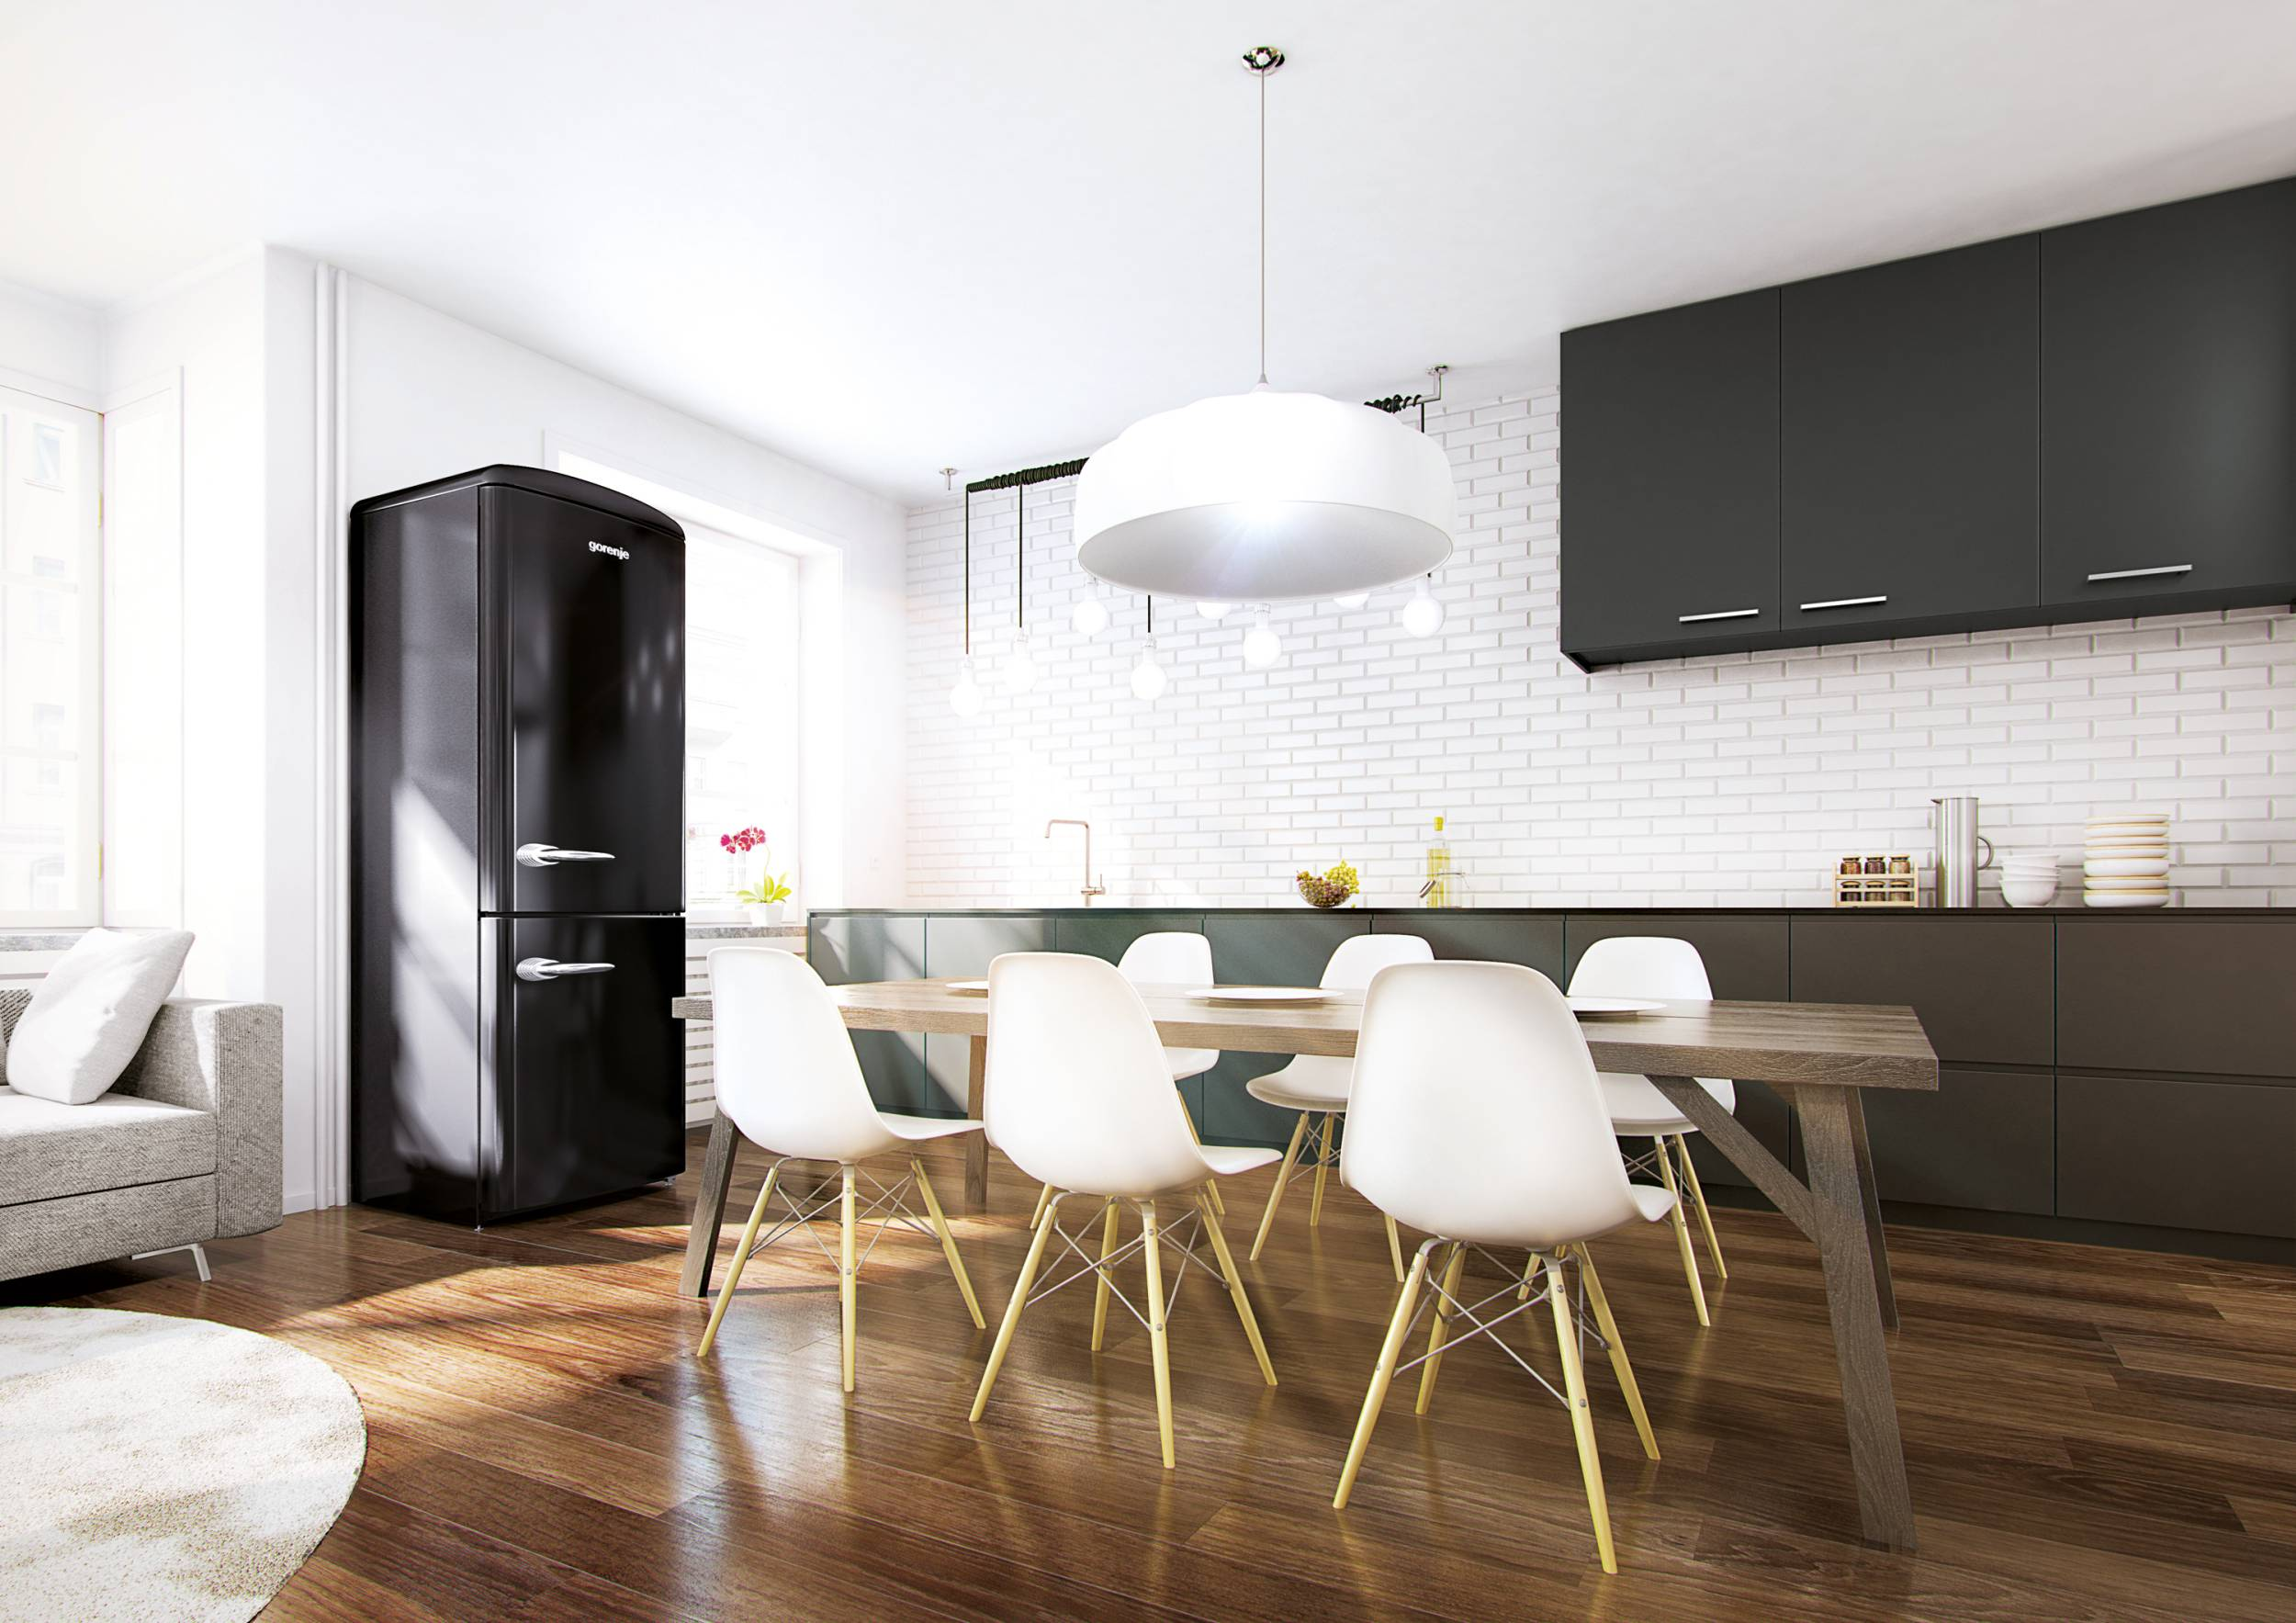 Hervorragend Gorenje Retro Collection - Gorenje WH81